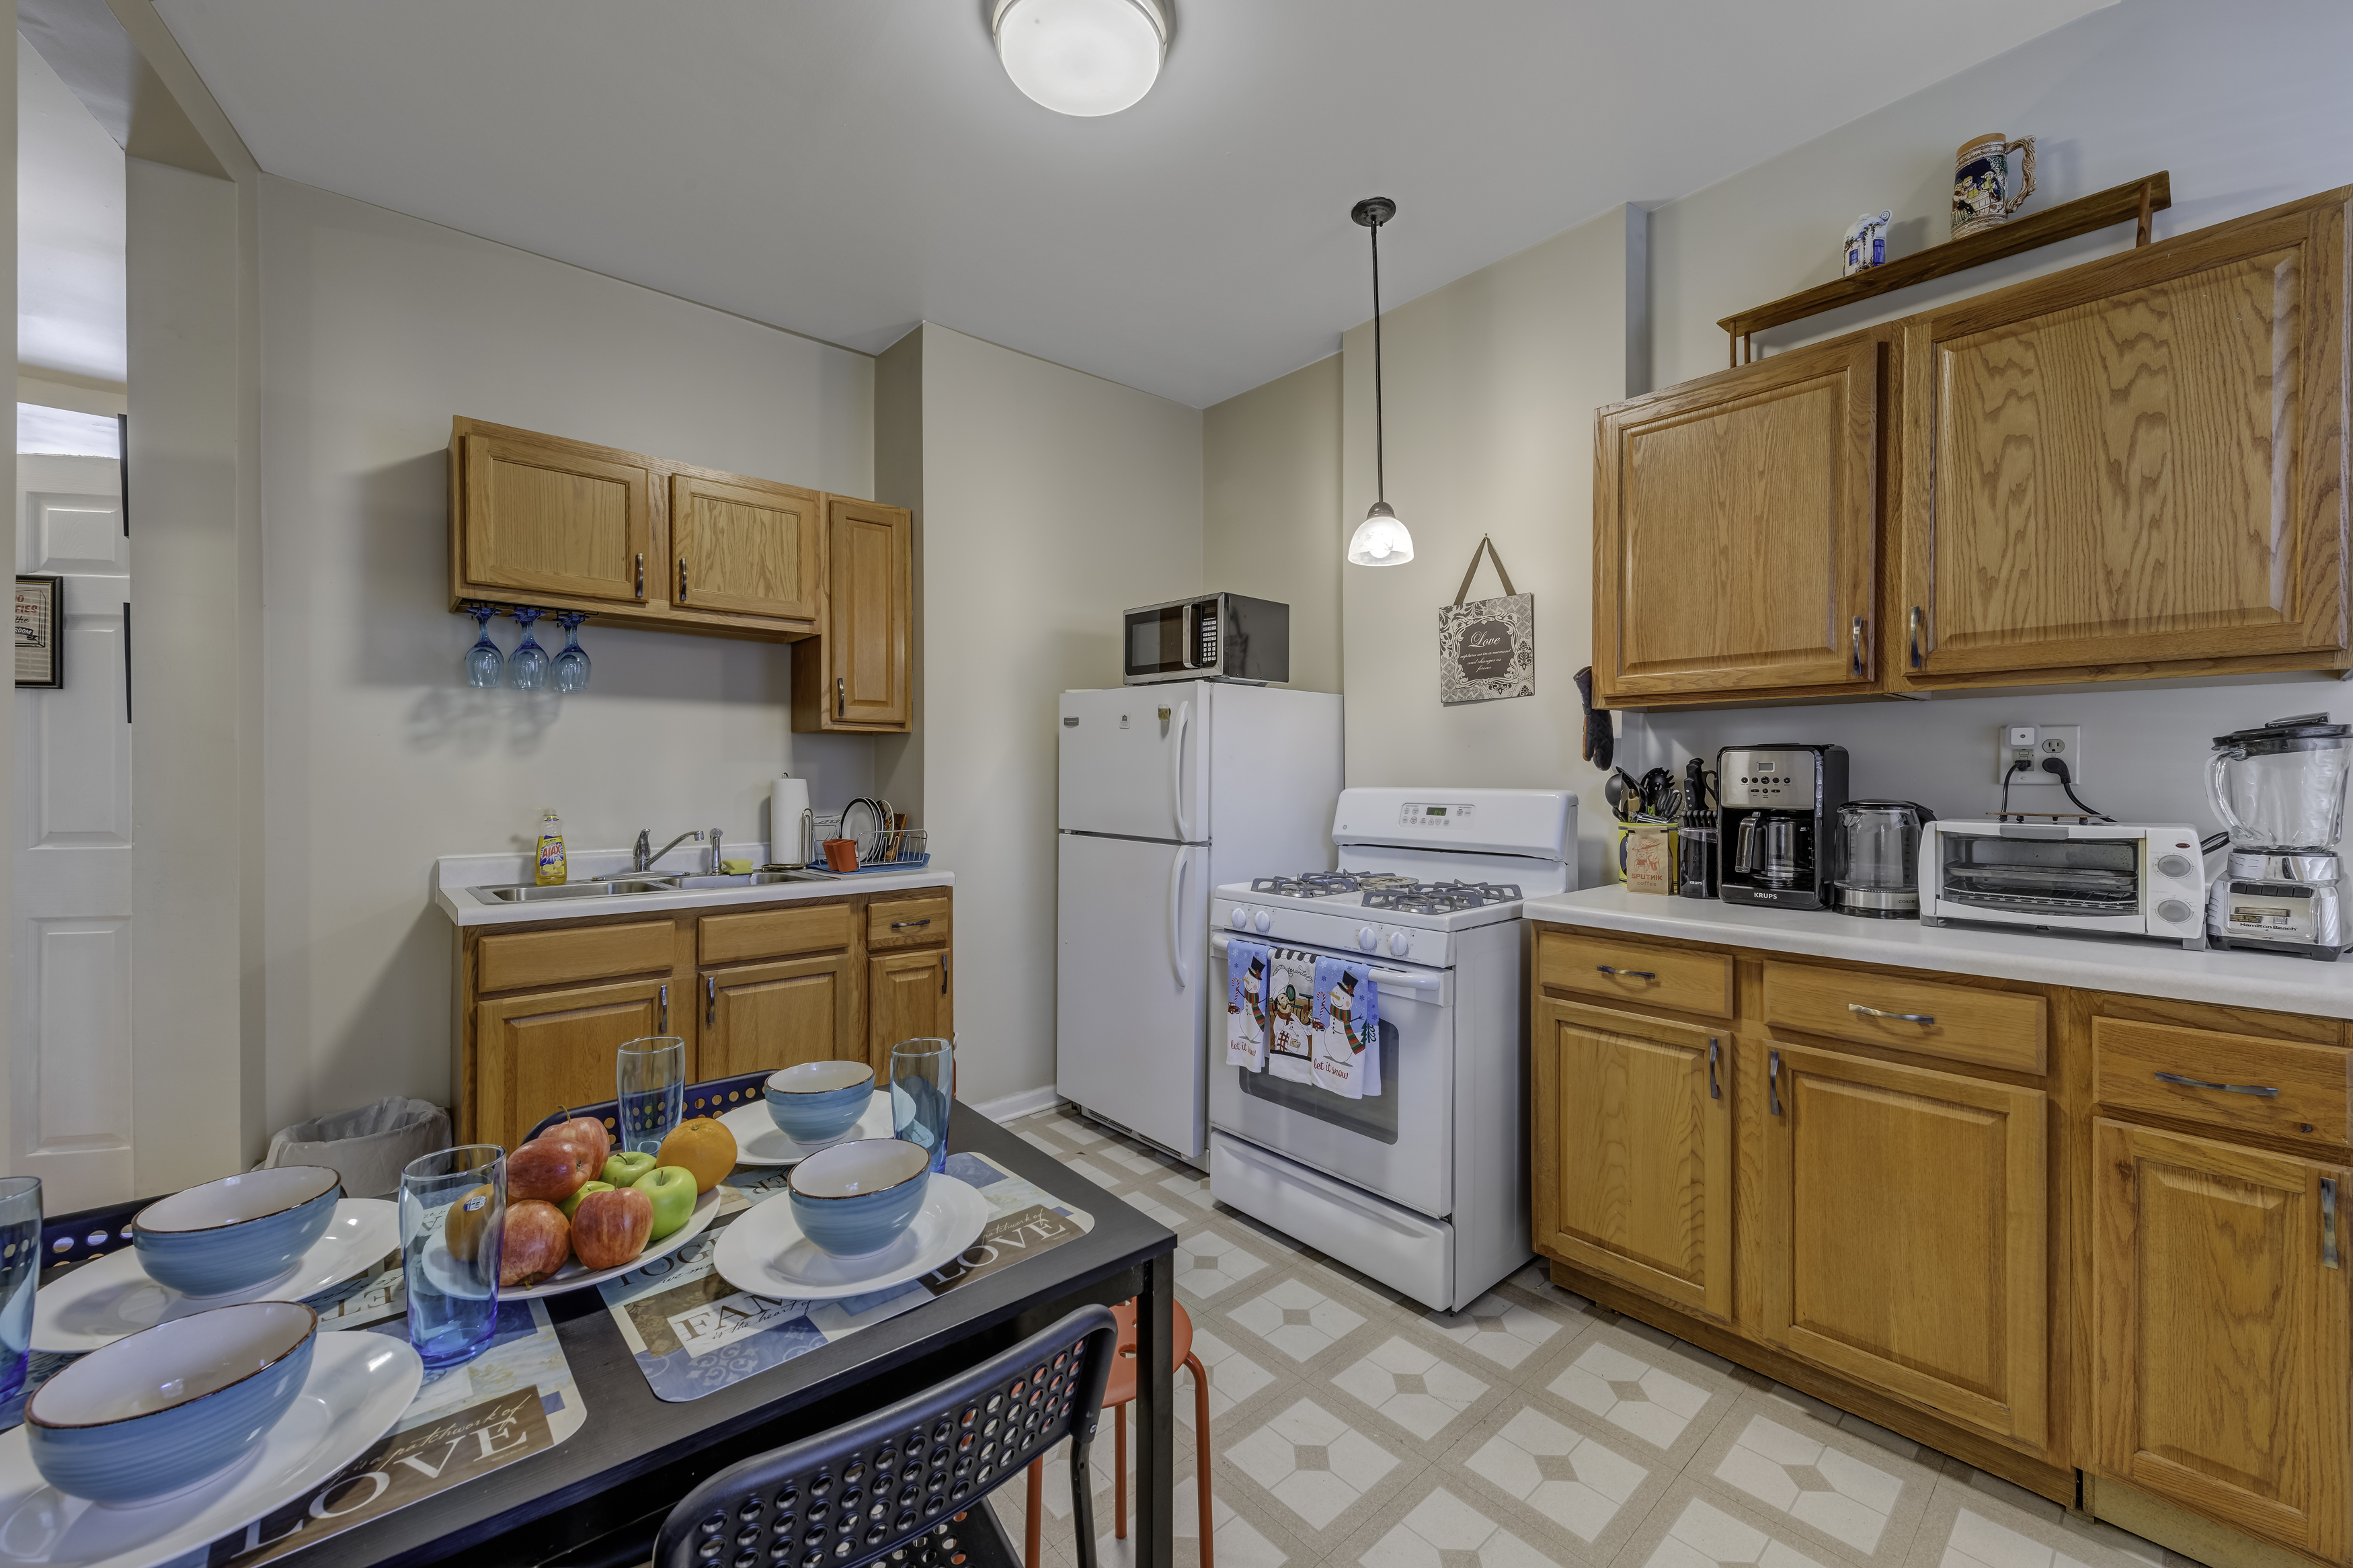 Apartment D-L-2 Historical Pullman - furnished apartments 2 Bdrm photo 23584660